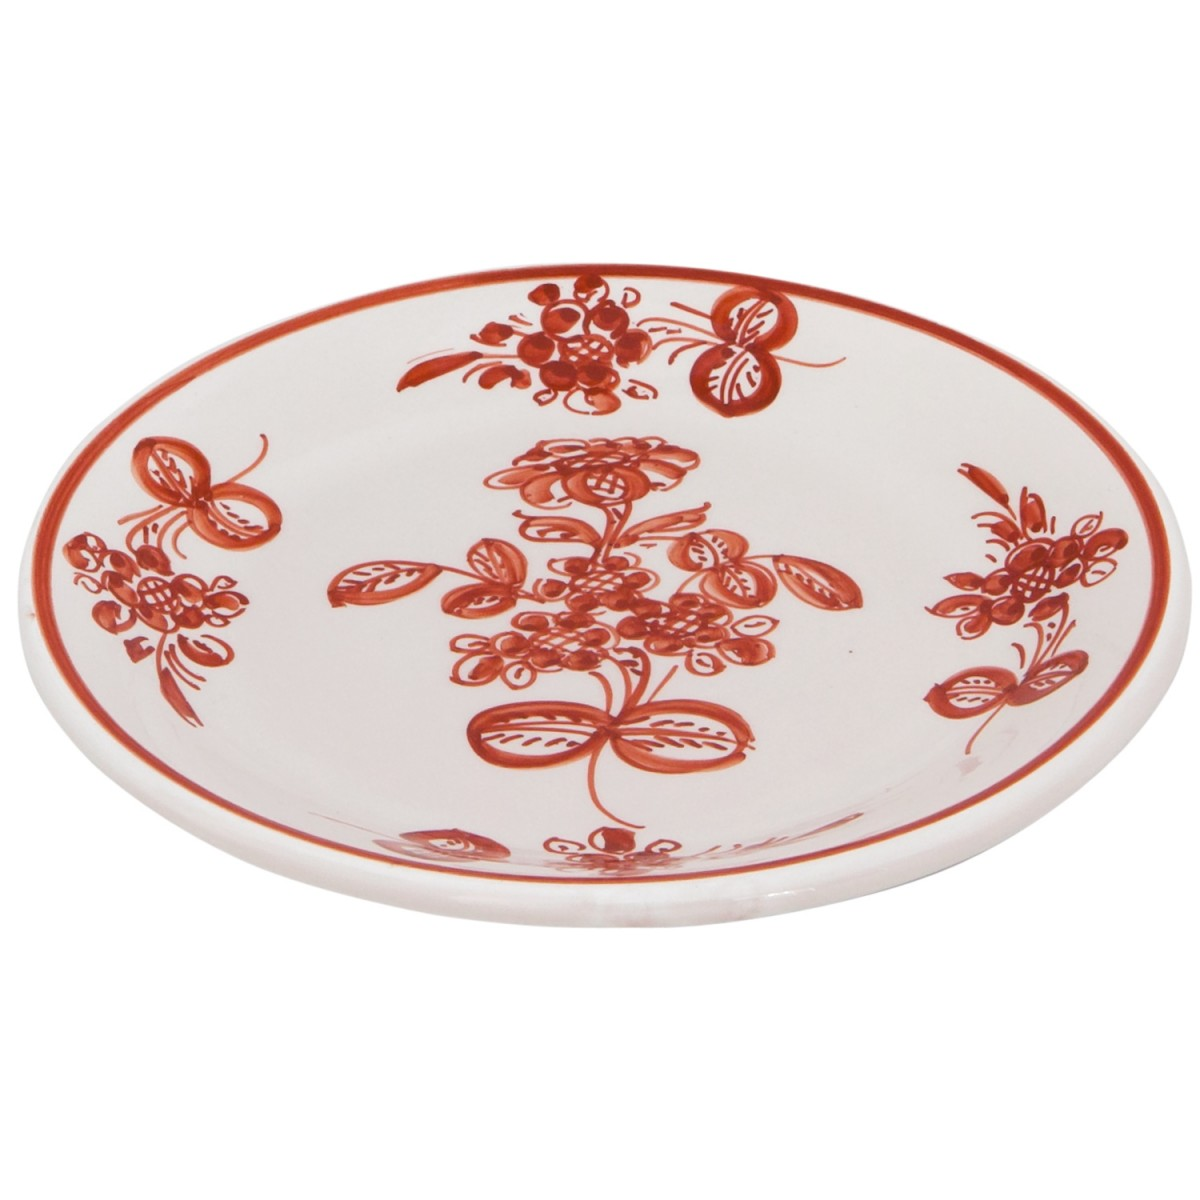 Hand_Painted_Ceramic_Dessert_Decorative_Plate-Flower_I_Terracotta-Skyriana_Plates-1